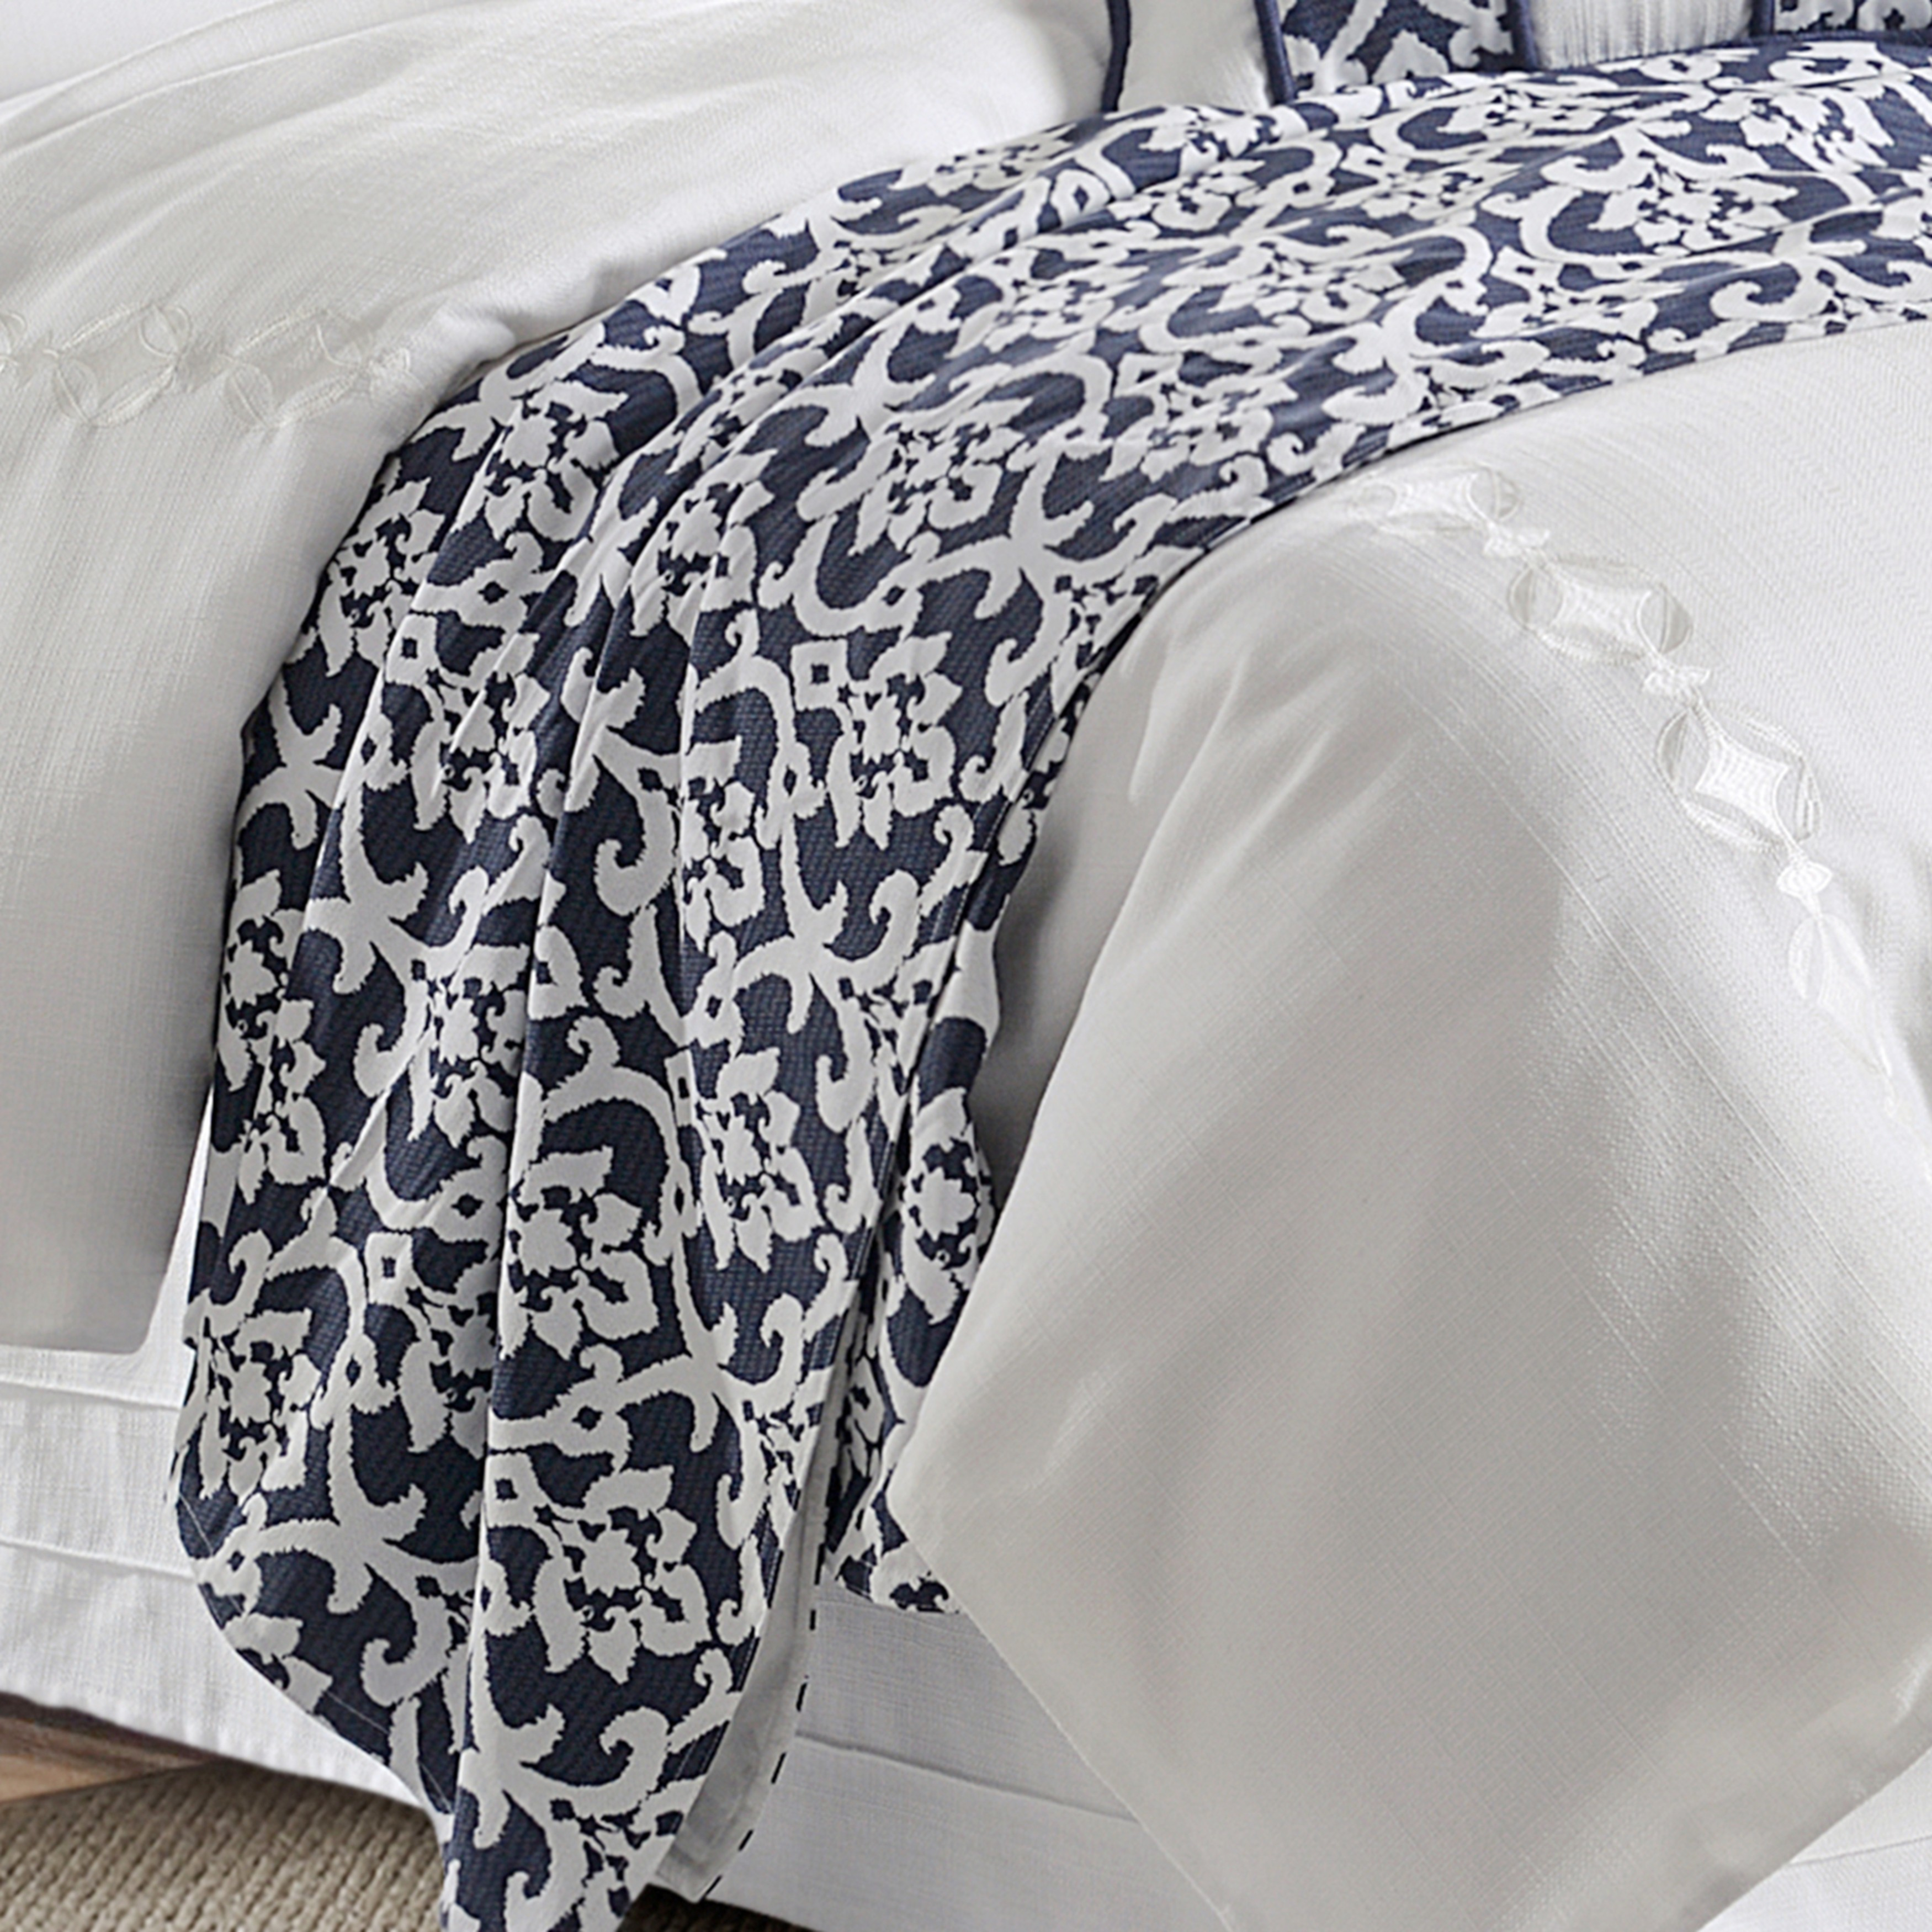 Hiend Accents Kavali Navy White Floral Jaquard Duvet Shams Not Included Overstock 15907695